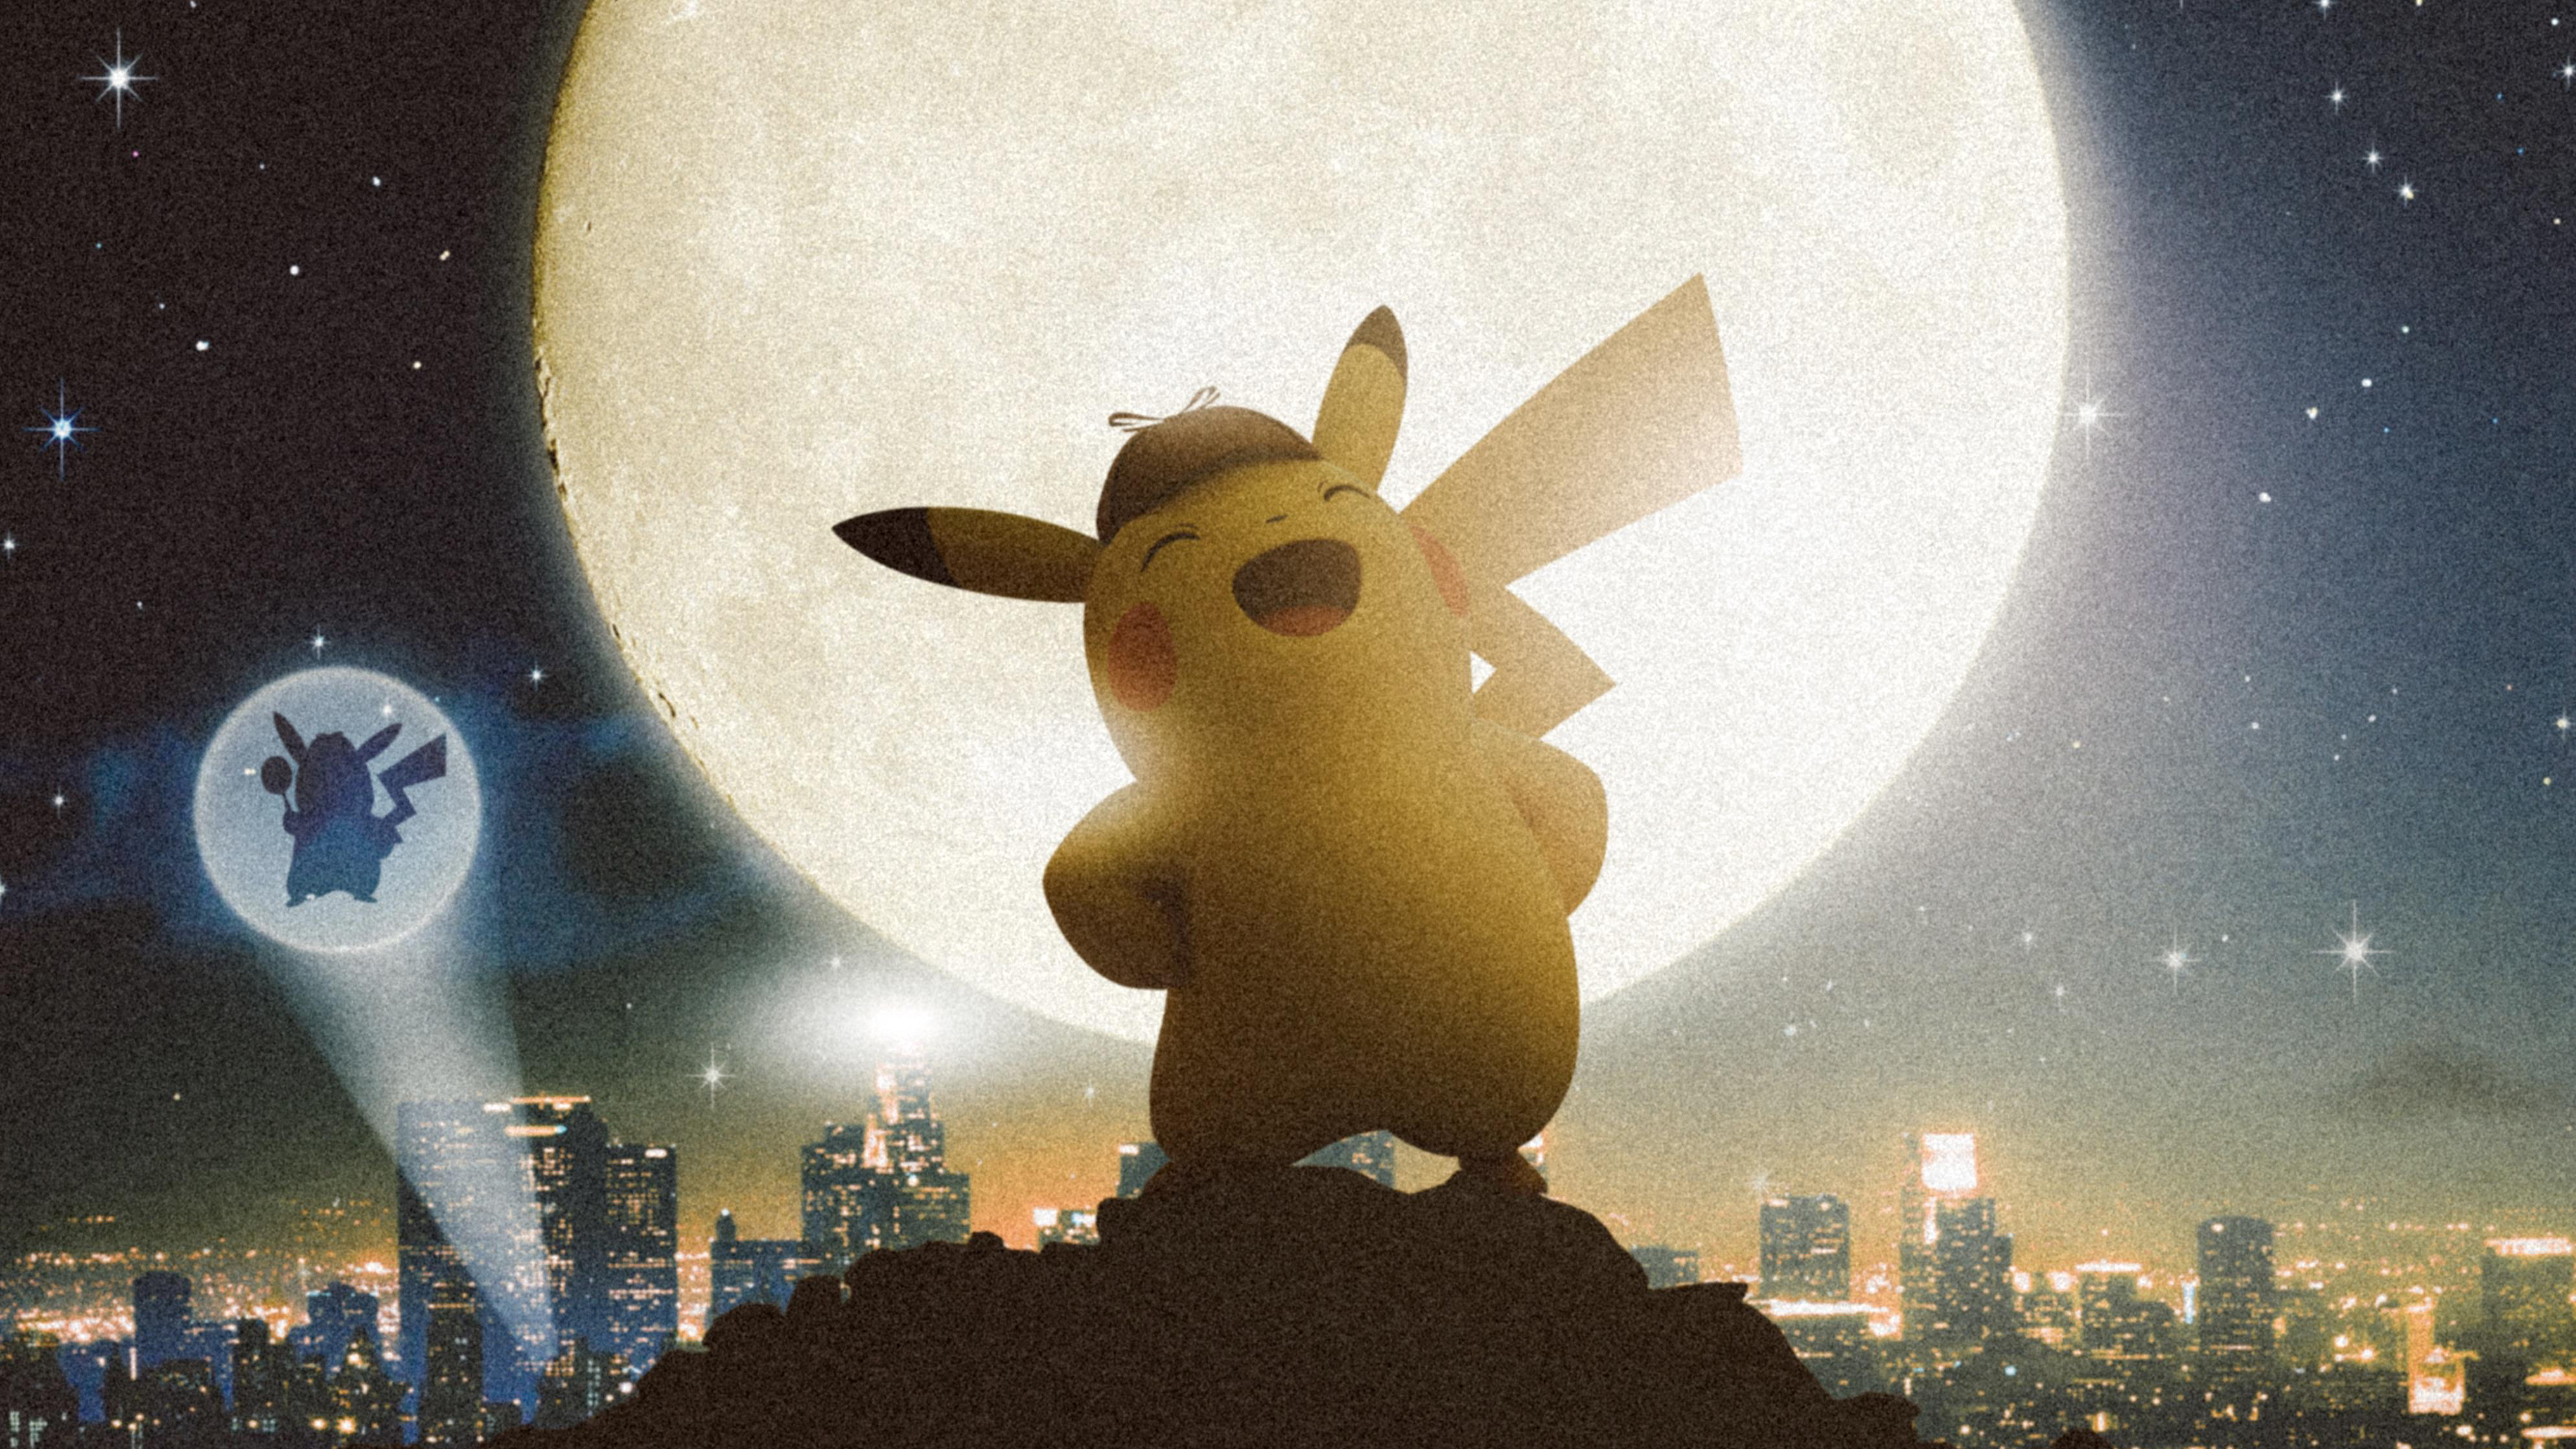 Detective Pikachu Hd Movies 4k Wallpapers Images Backgrounds